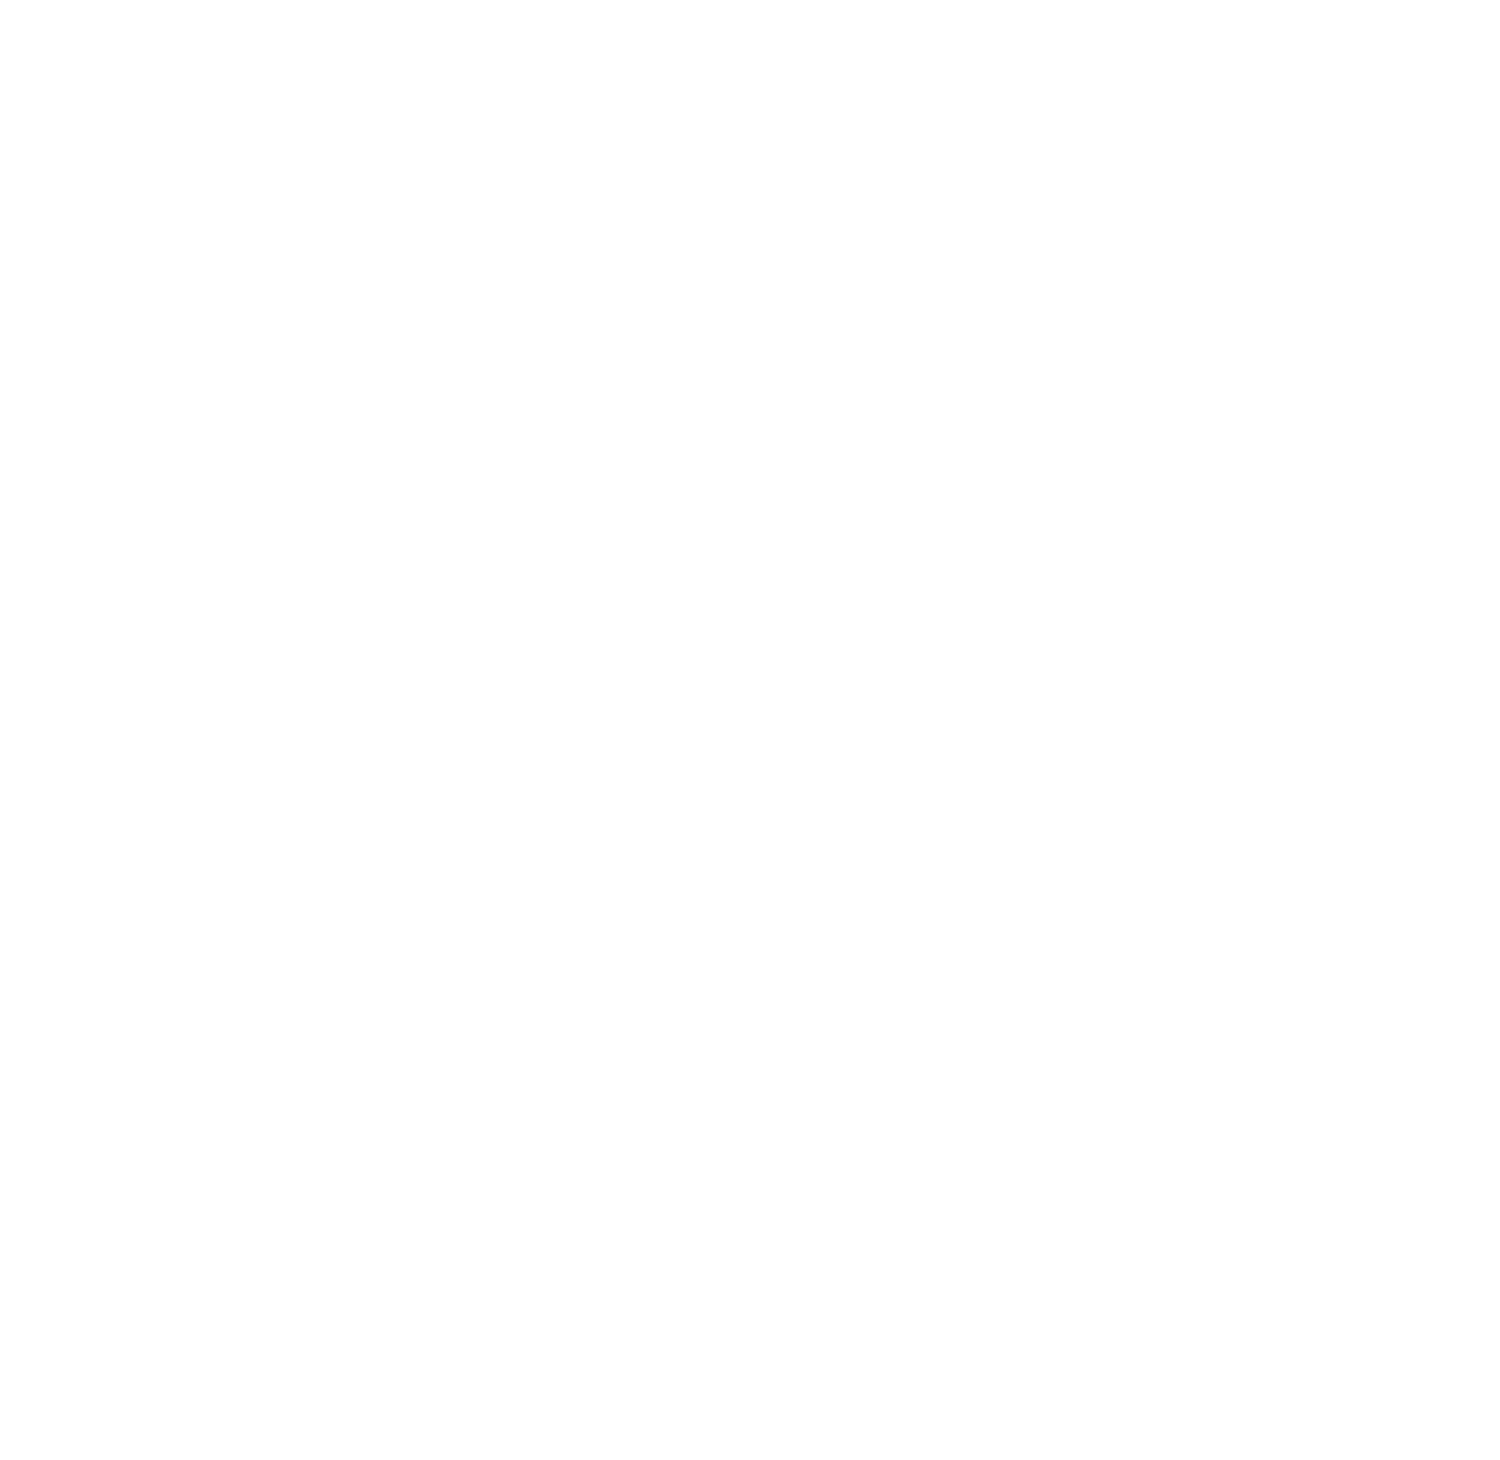 Jeff DesLauriers Sound Services